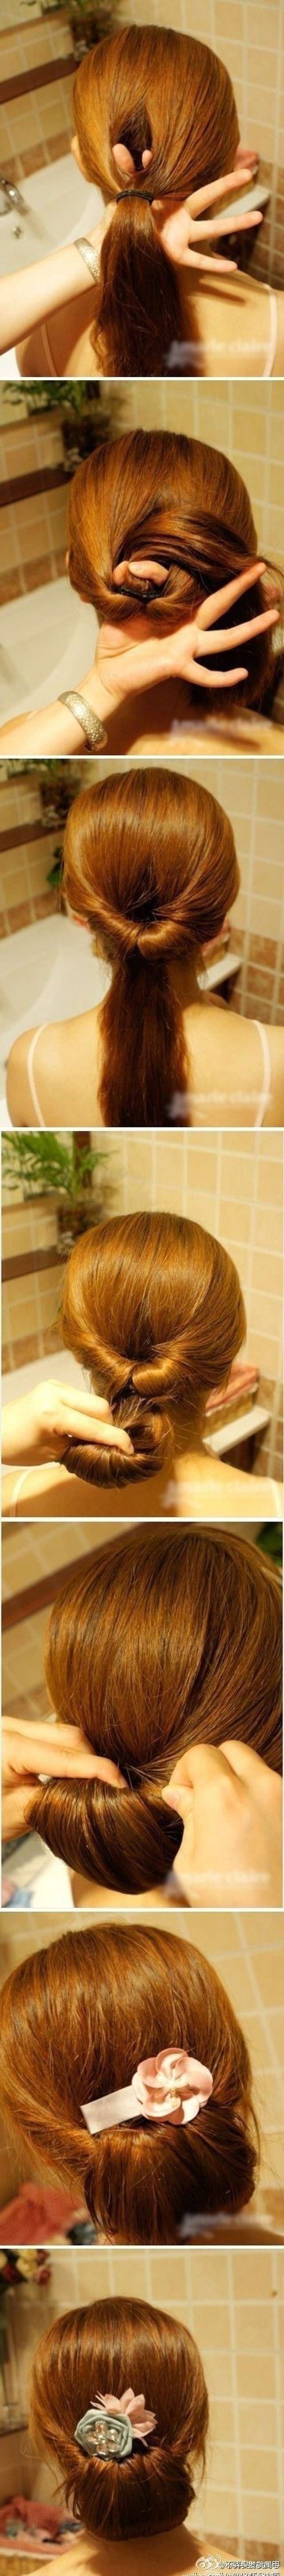 For Lovely Girls. Hairstyles for 5 minutes (27 pics)